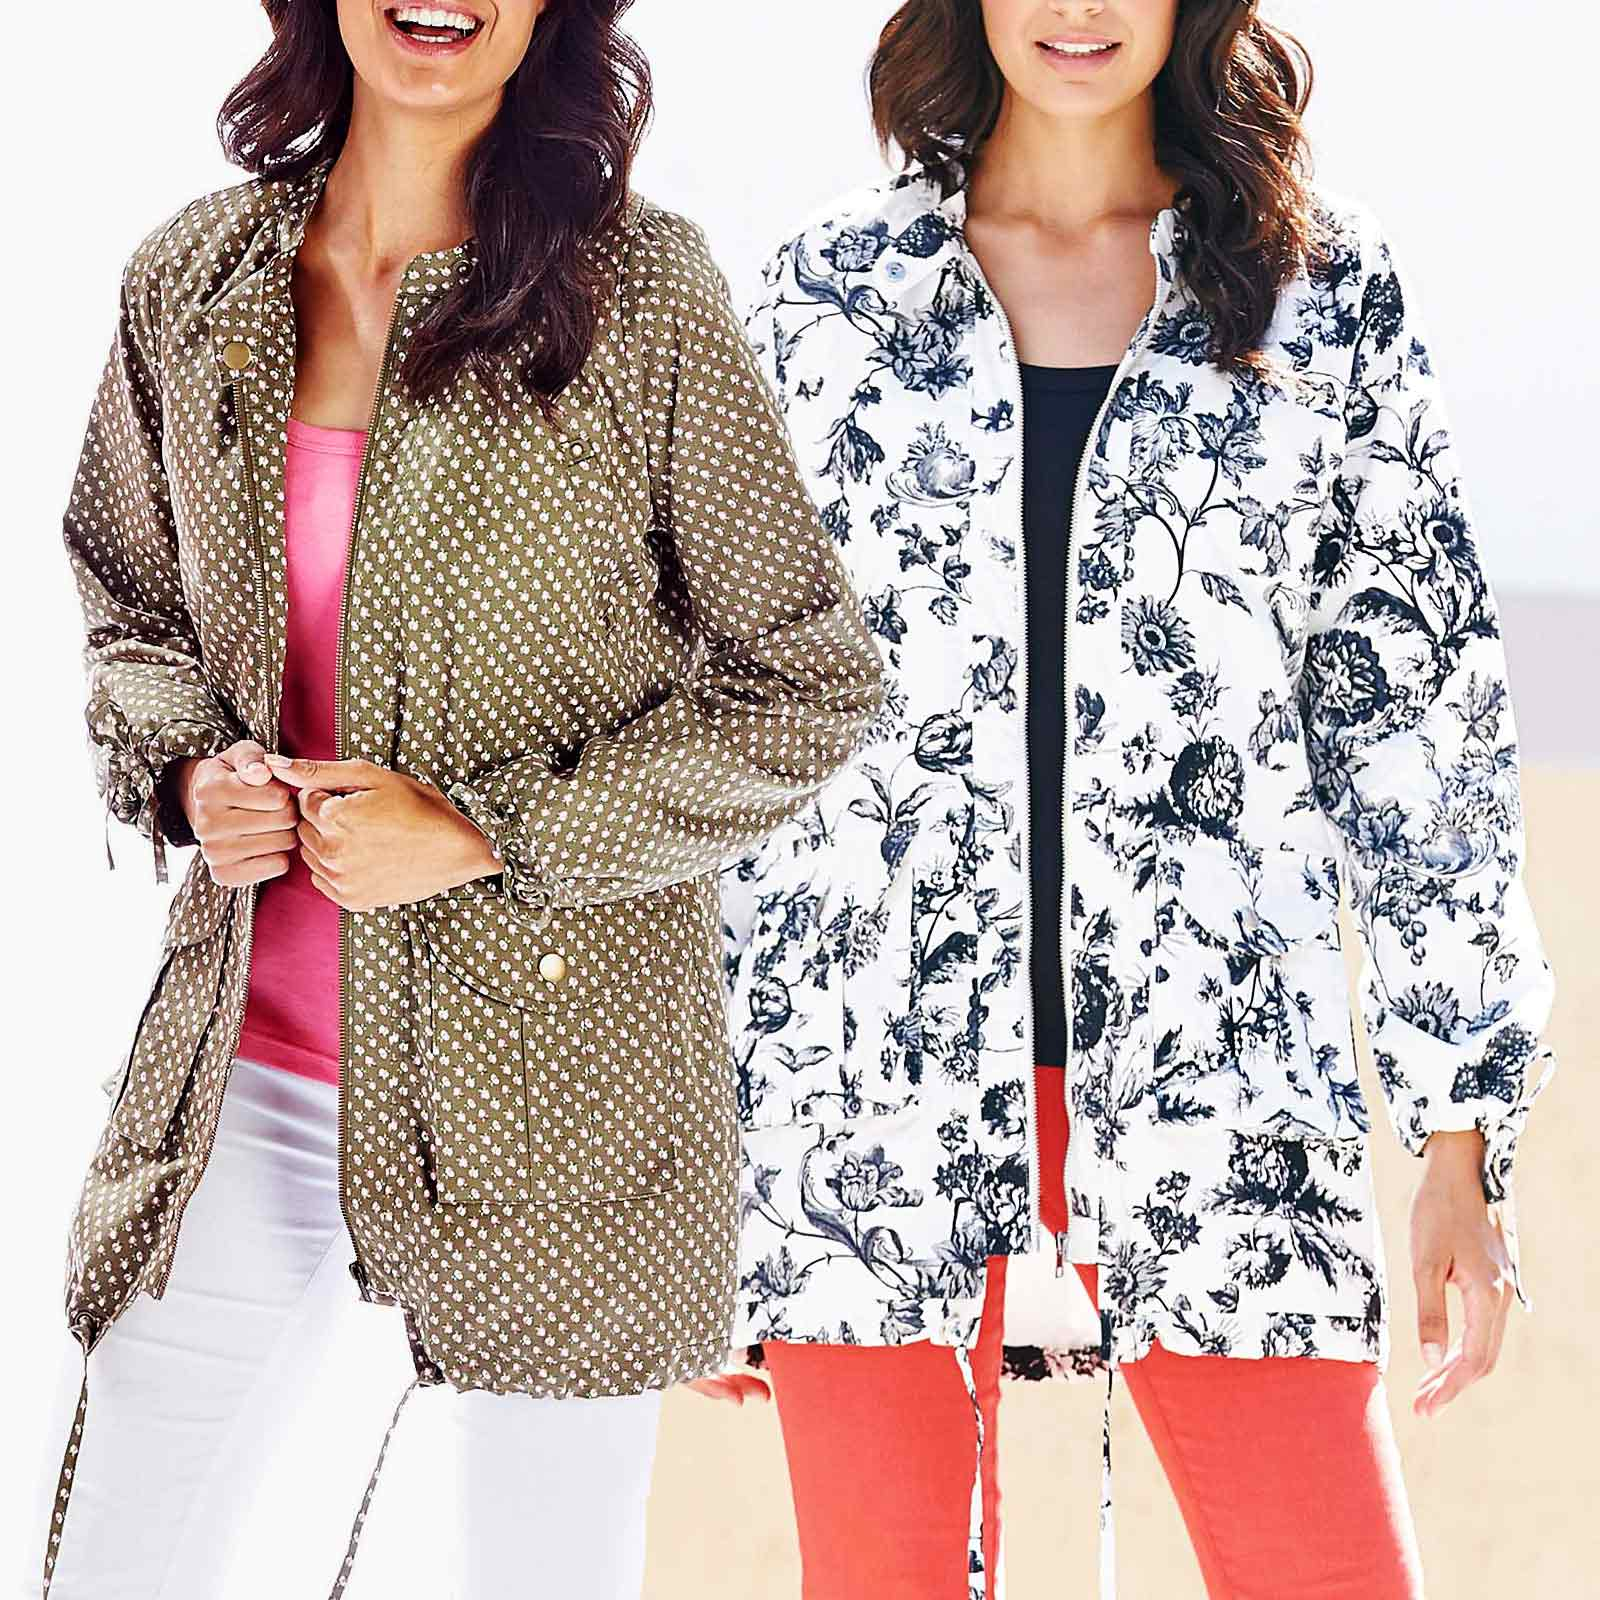 fashion design 2019 factory price select for newest Details about JD Williams Ladies Womens Summer Parka Jacket Rain Coat  Floral Print Pac a Mac